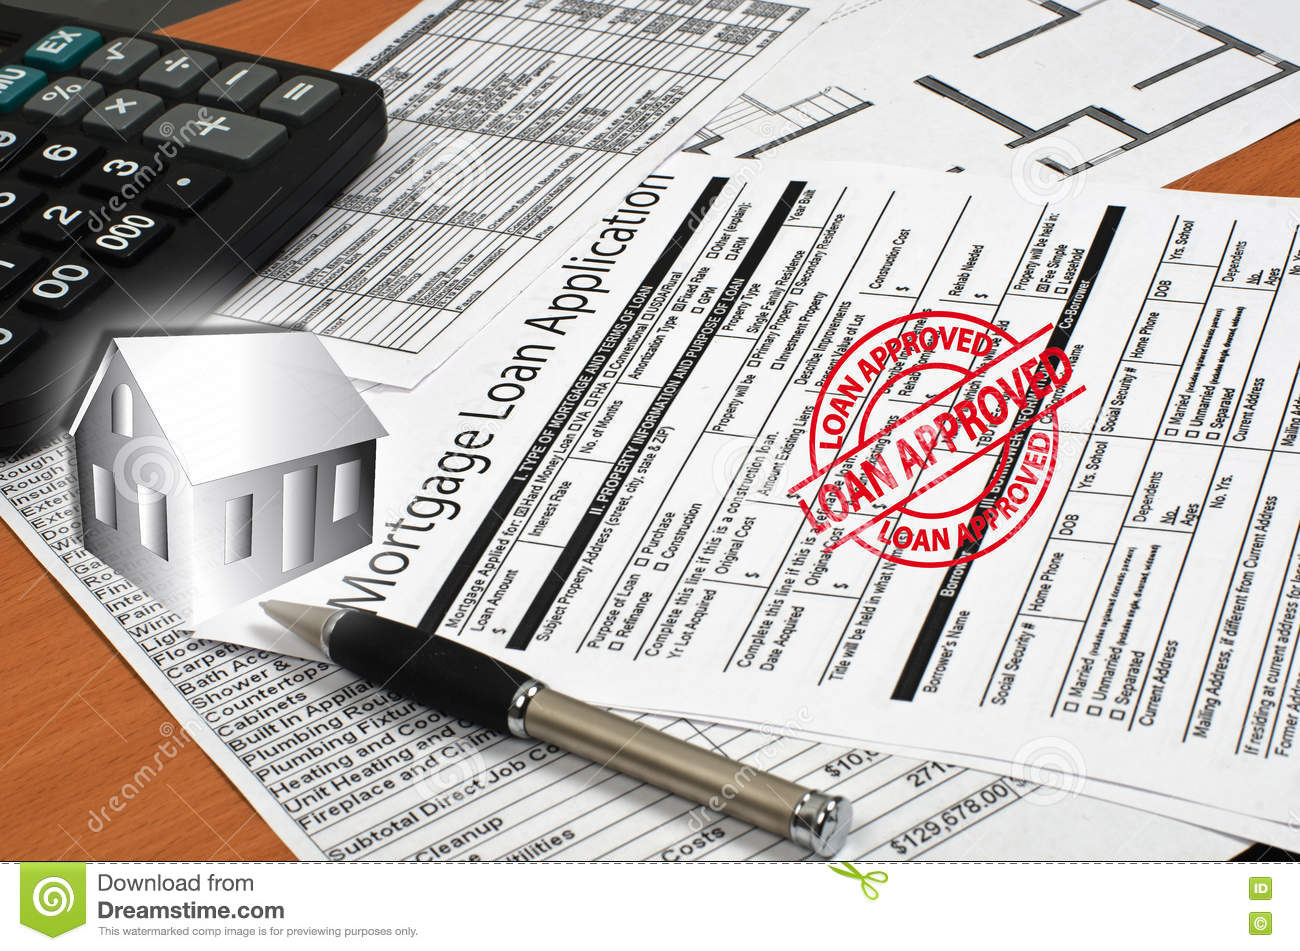 Application for a mortgage loan is on the table